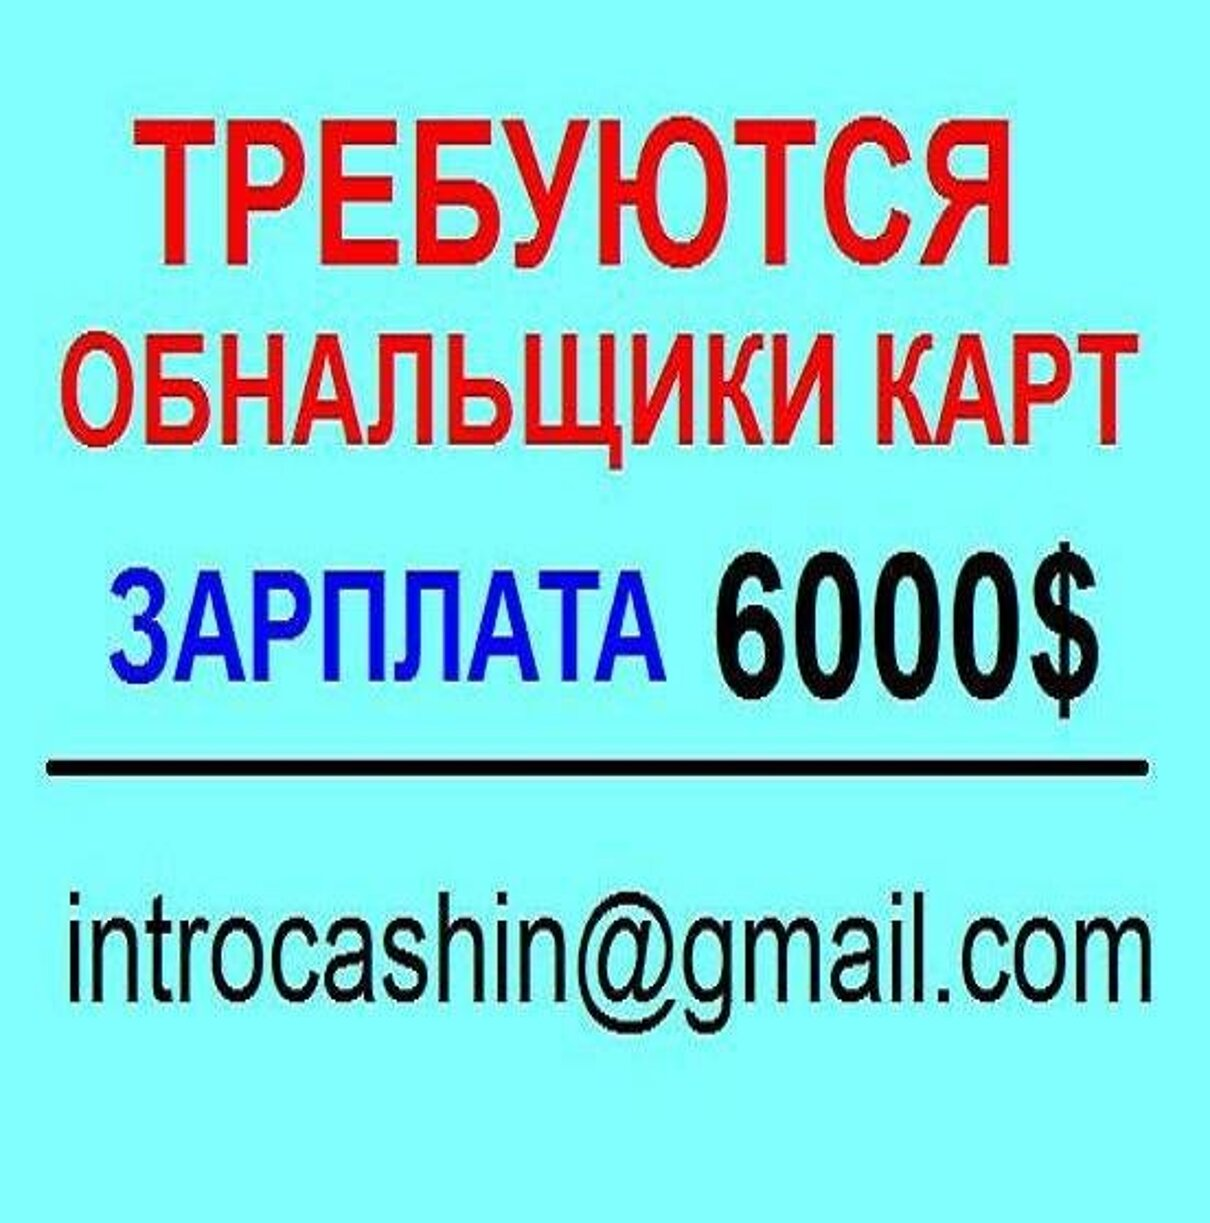 Жалоба-отзыв: Introcashin@gmail.com - Introcashin@gmail.com --- МОШЕННИК!!!